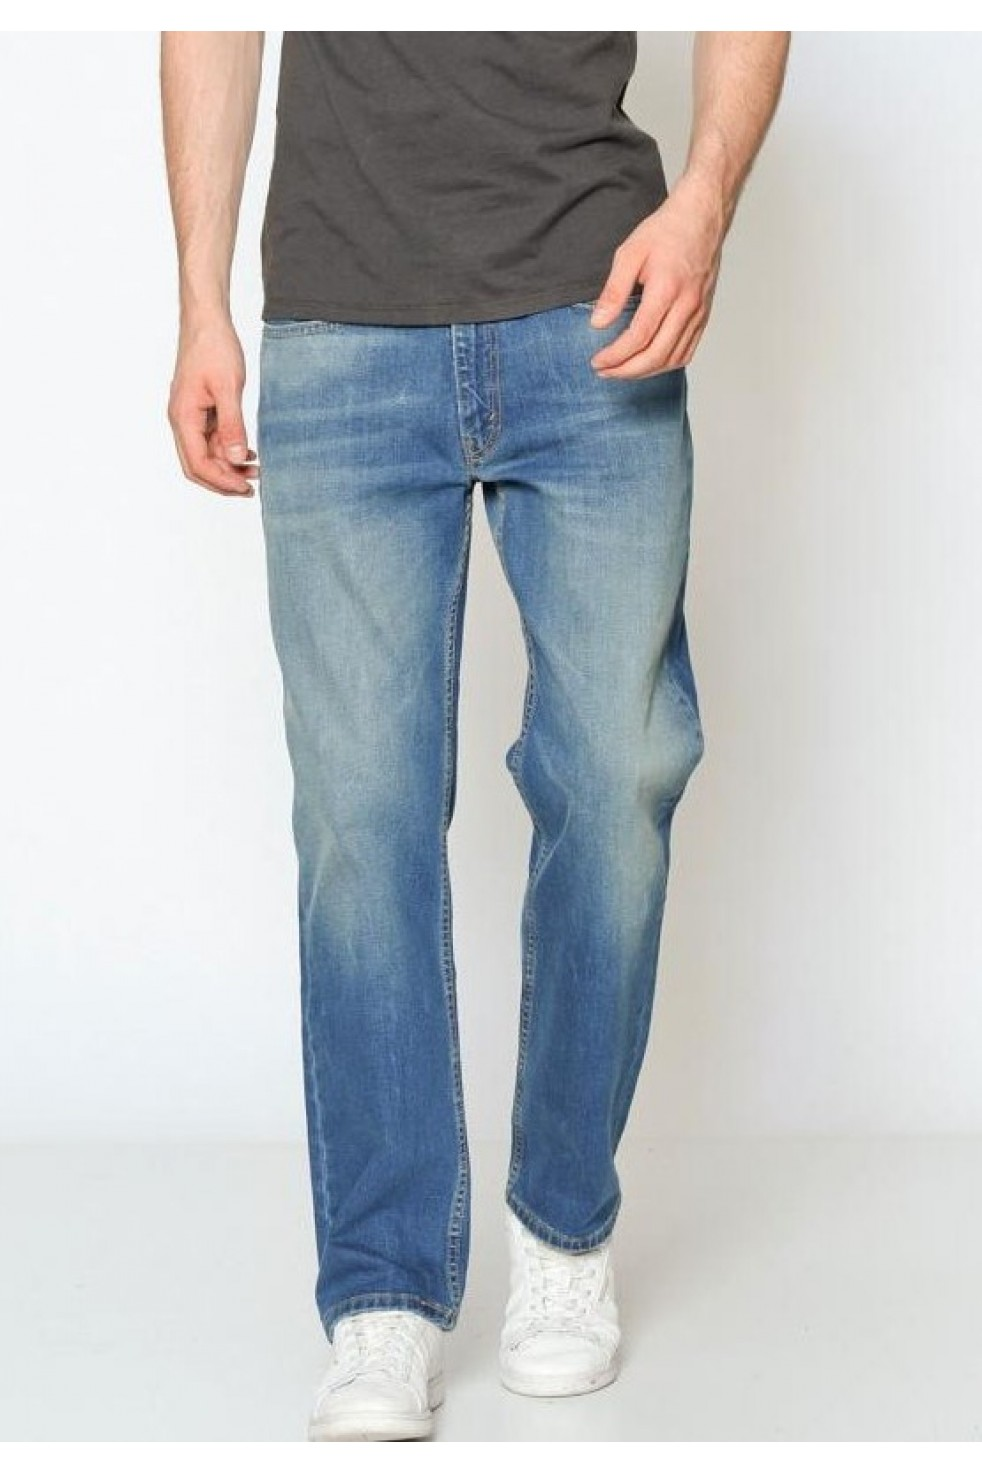 Levis-Erkek-Jean-Pantolon-514-Straight-Fit-00514-0849